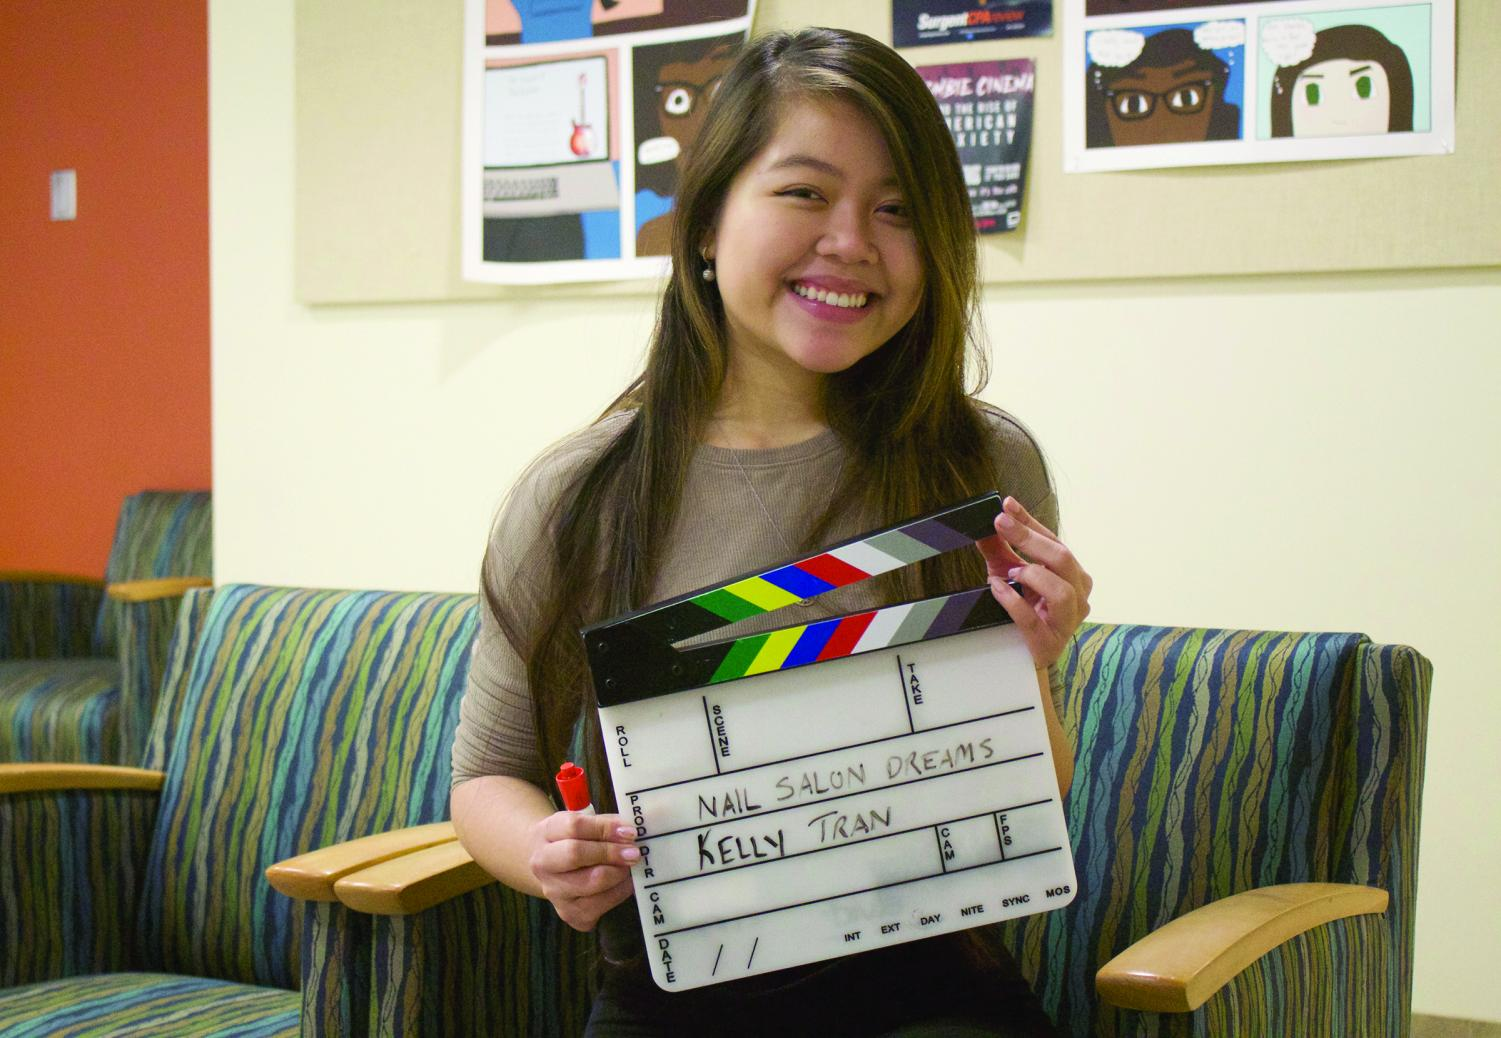 Kelly Tran is currently working on her newest film, 'Nail Salon Dreams.'